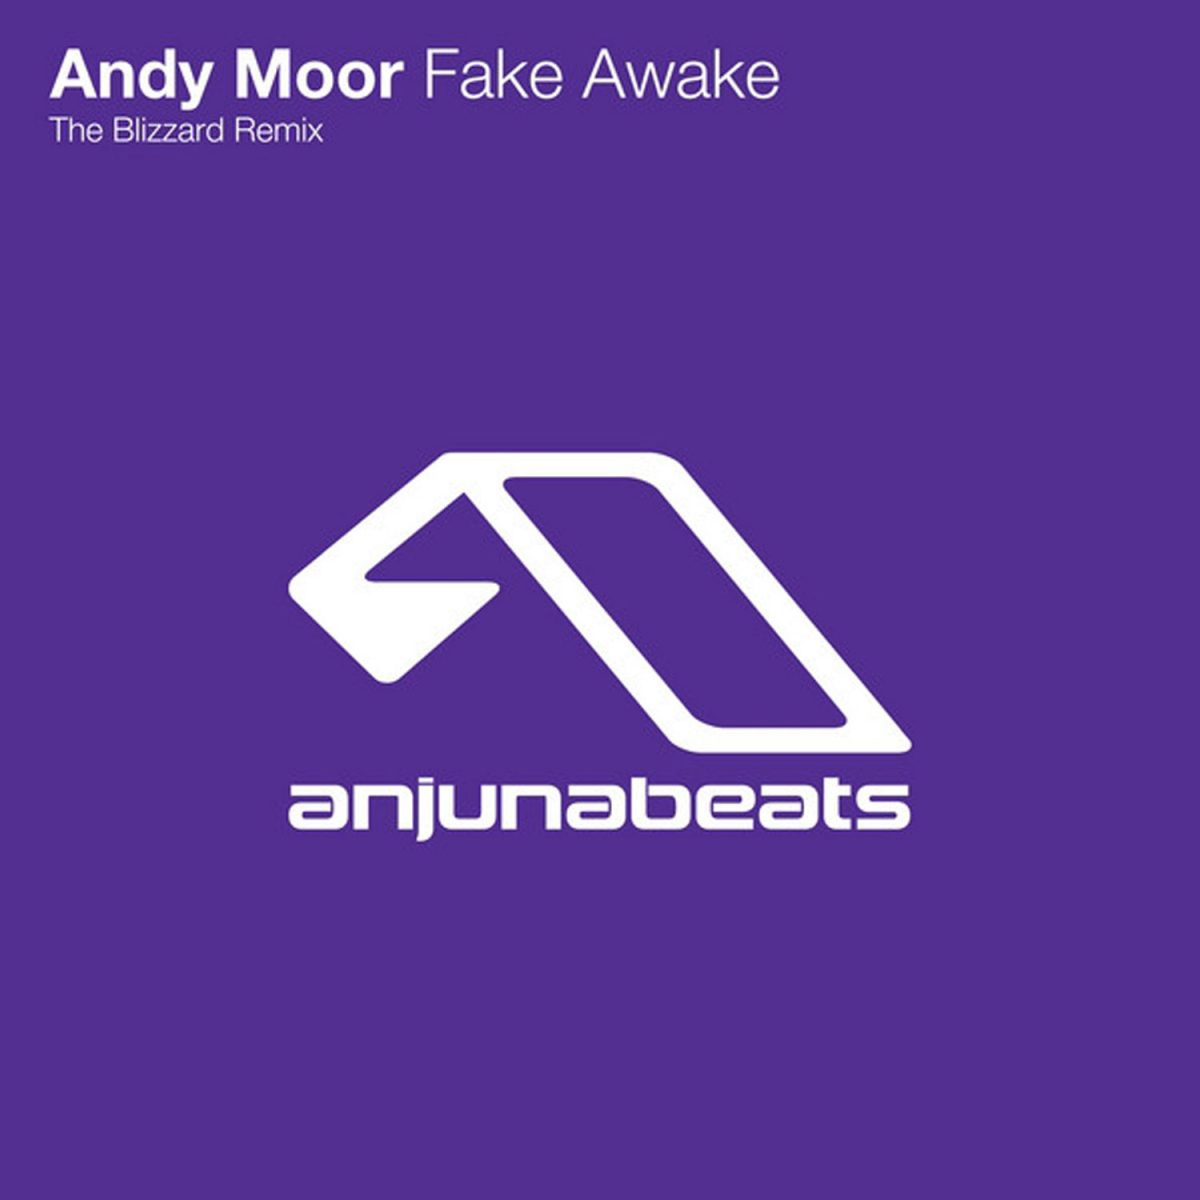 Fake Awake Andy Moor The Blizzard Remix - The Blizzard - on Anjunabats